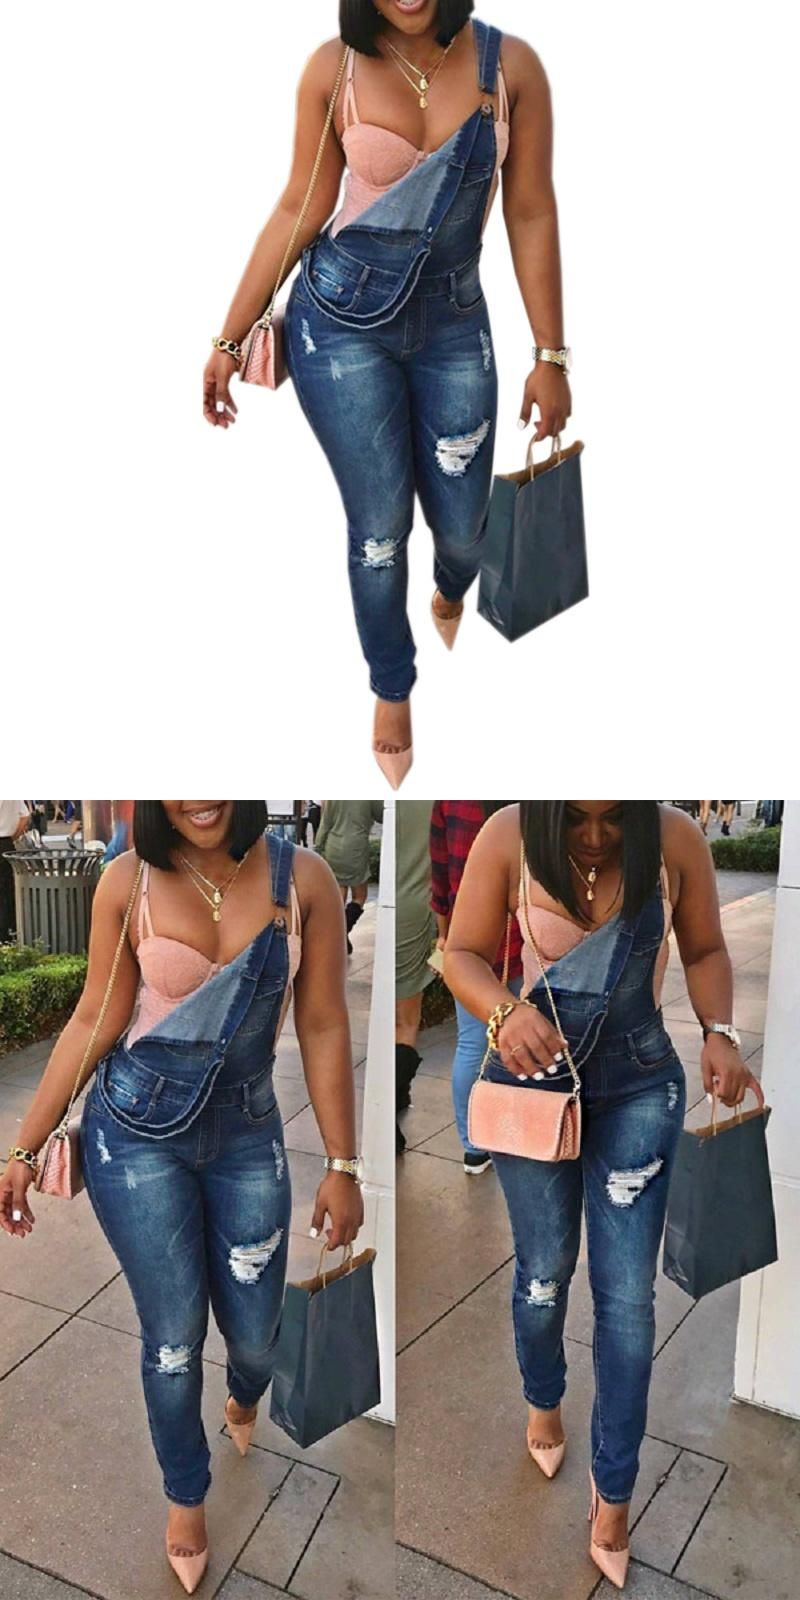 313dcc4486 HU GH 2017 Regular Female Denim Jumpsuit Hole Pckets Gallus Catsuit Fashion  Women Jumpsuits Casual Cute Girl Party Wear WT76075